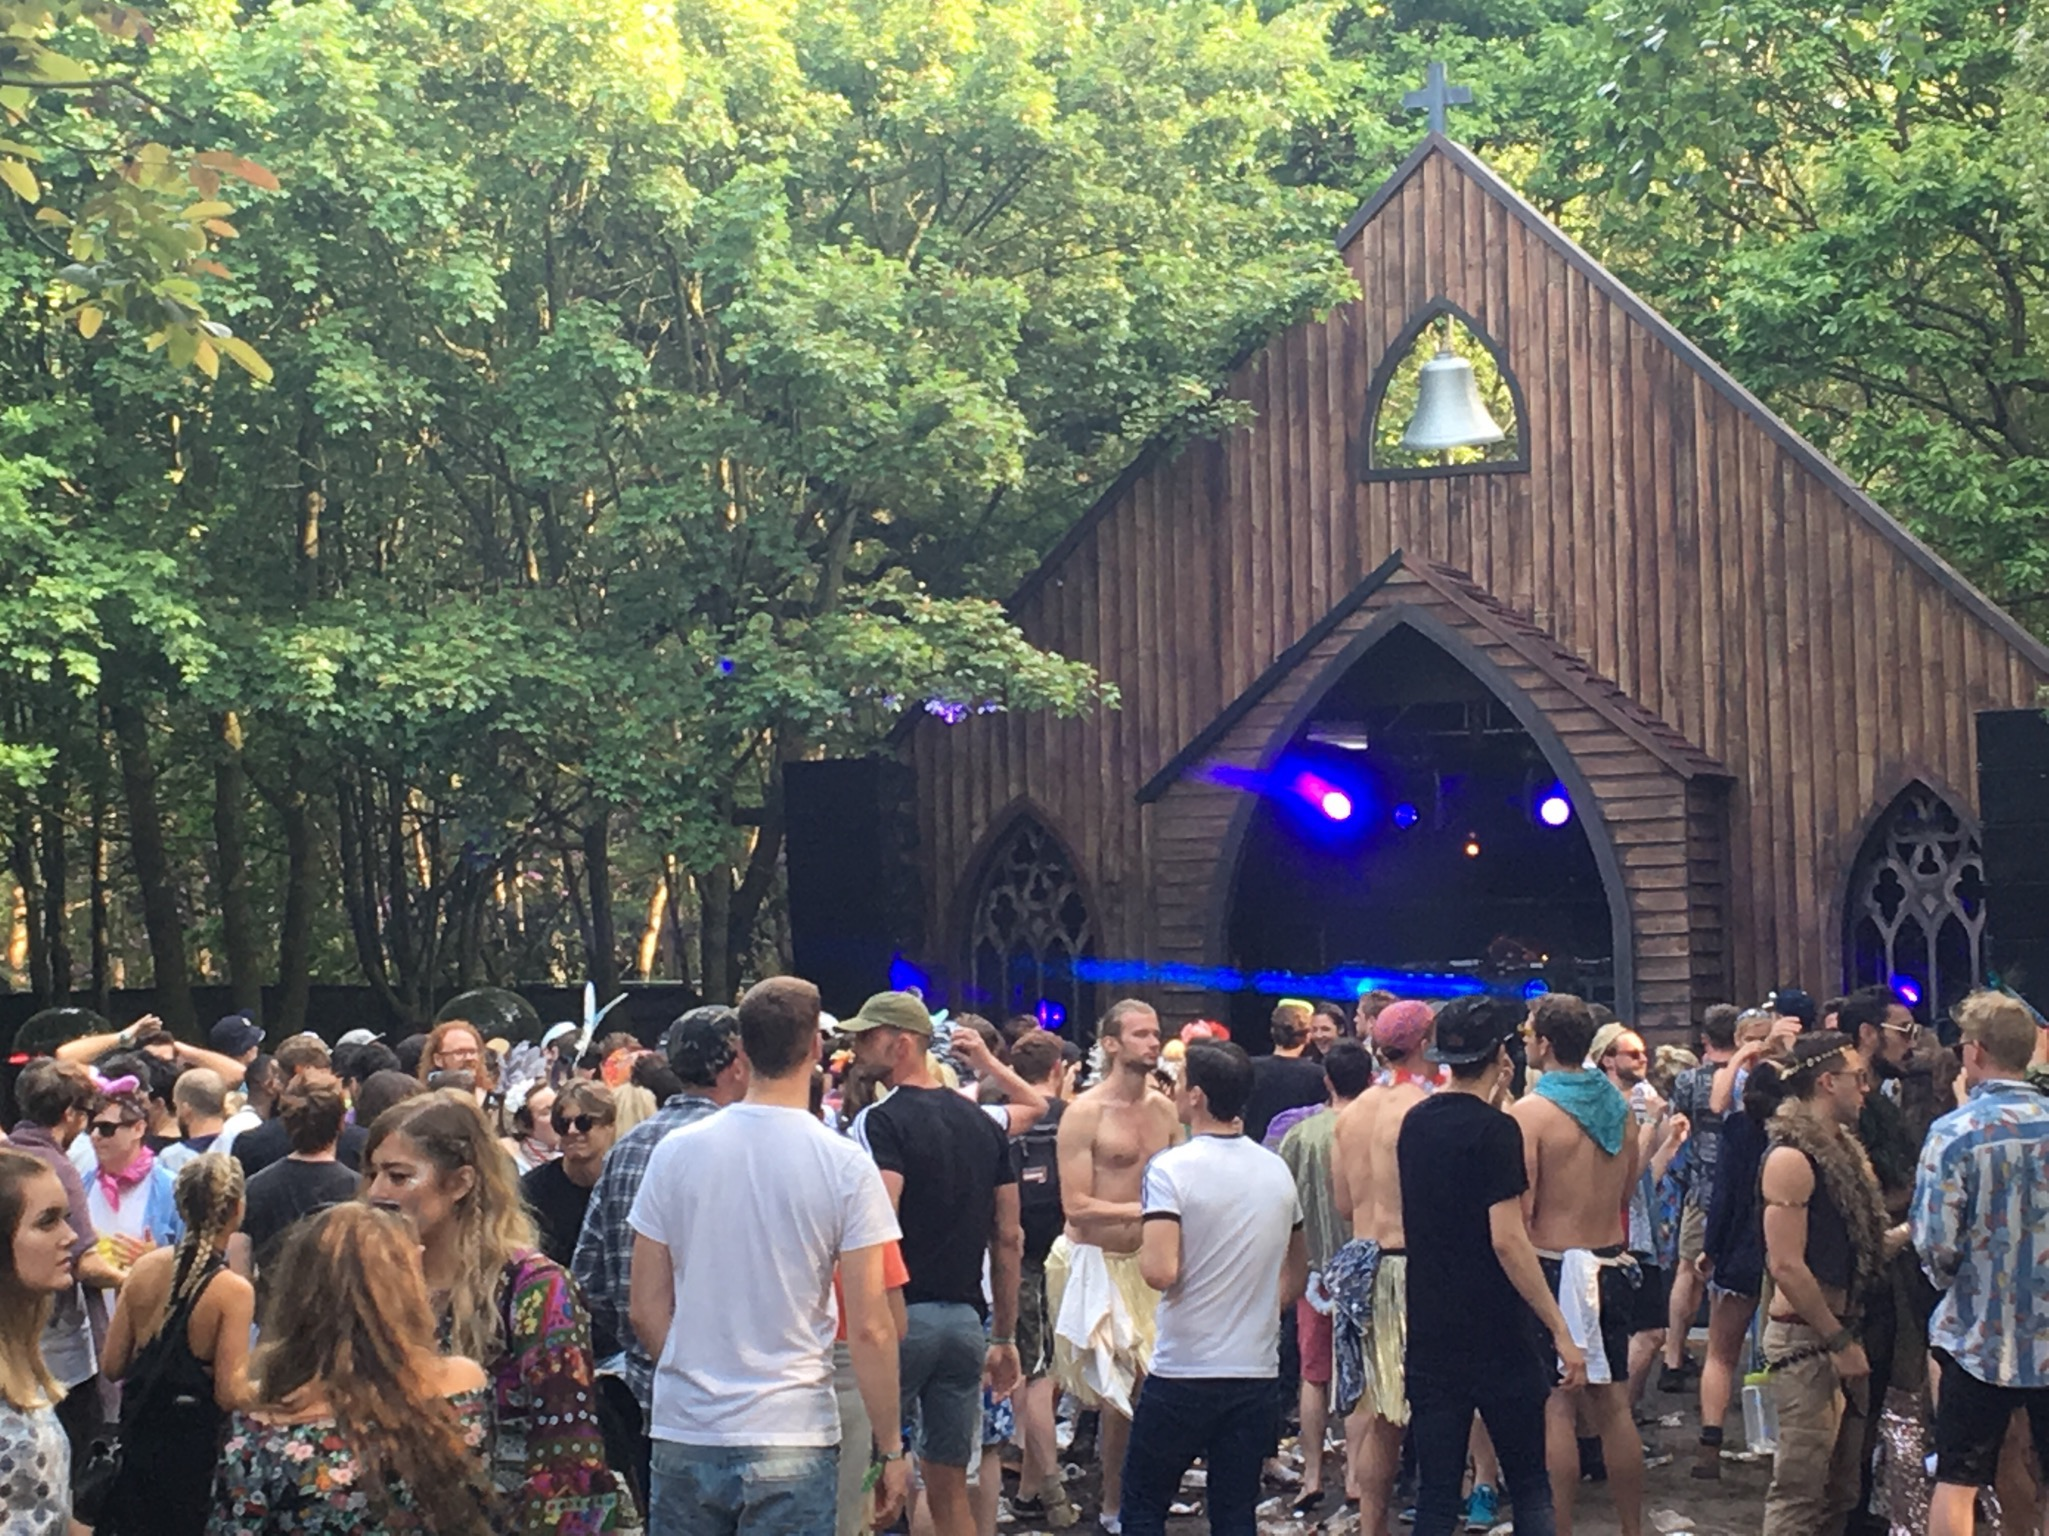 Lost Village Festival: Everything you need to know